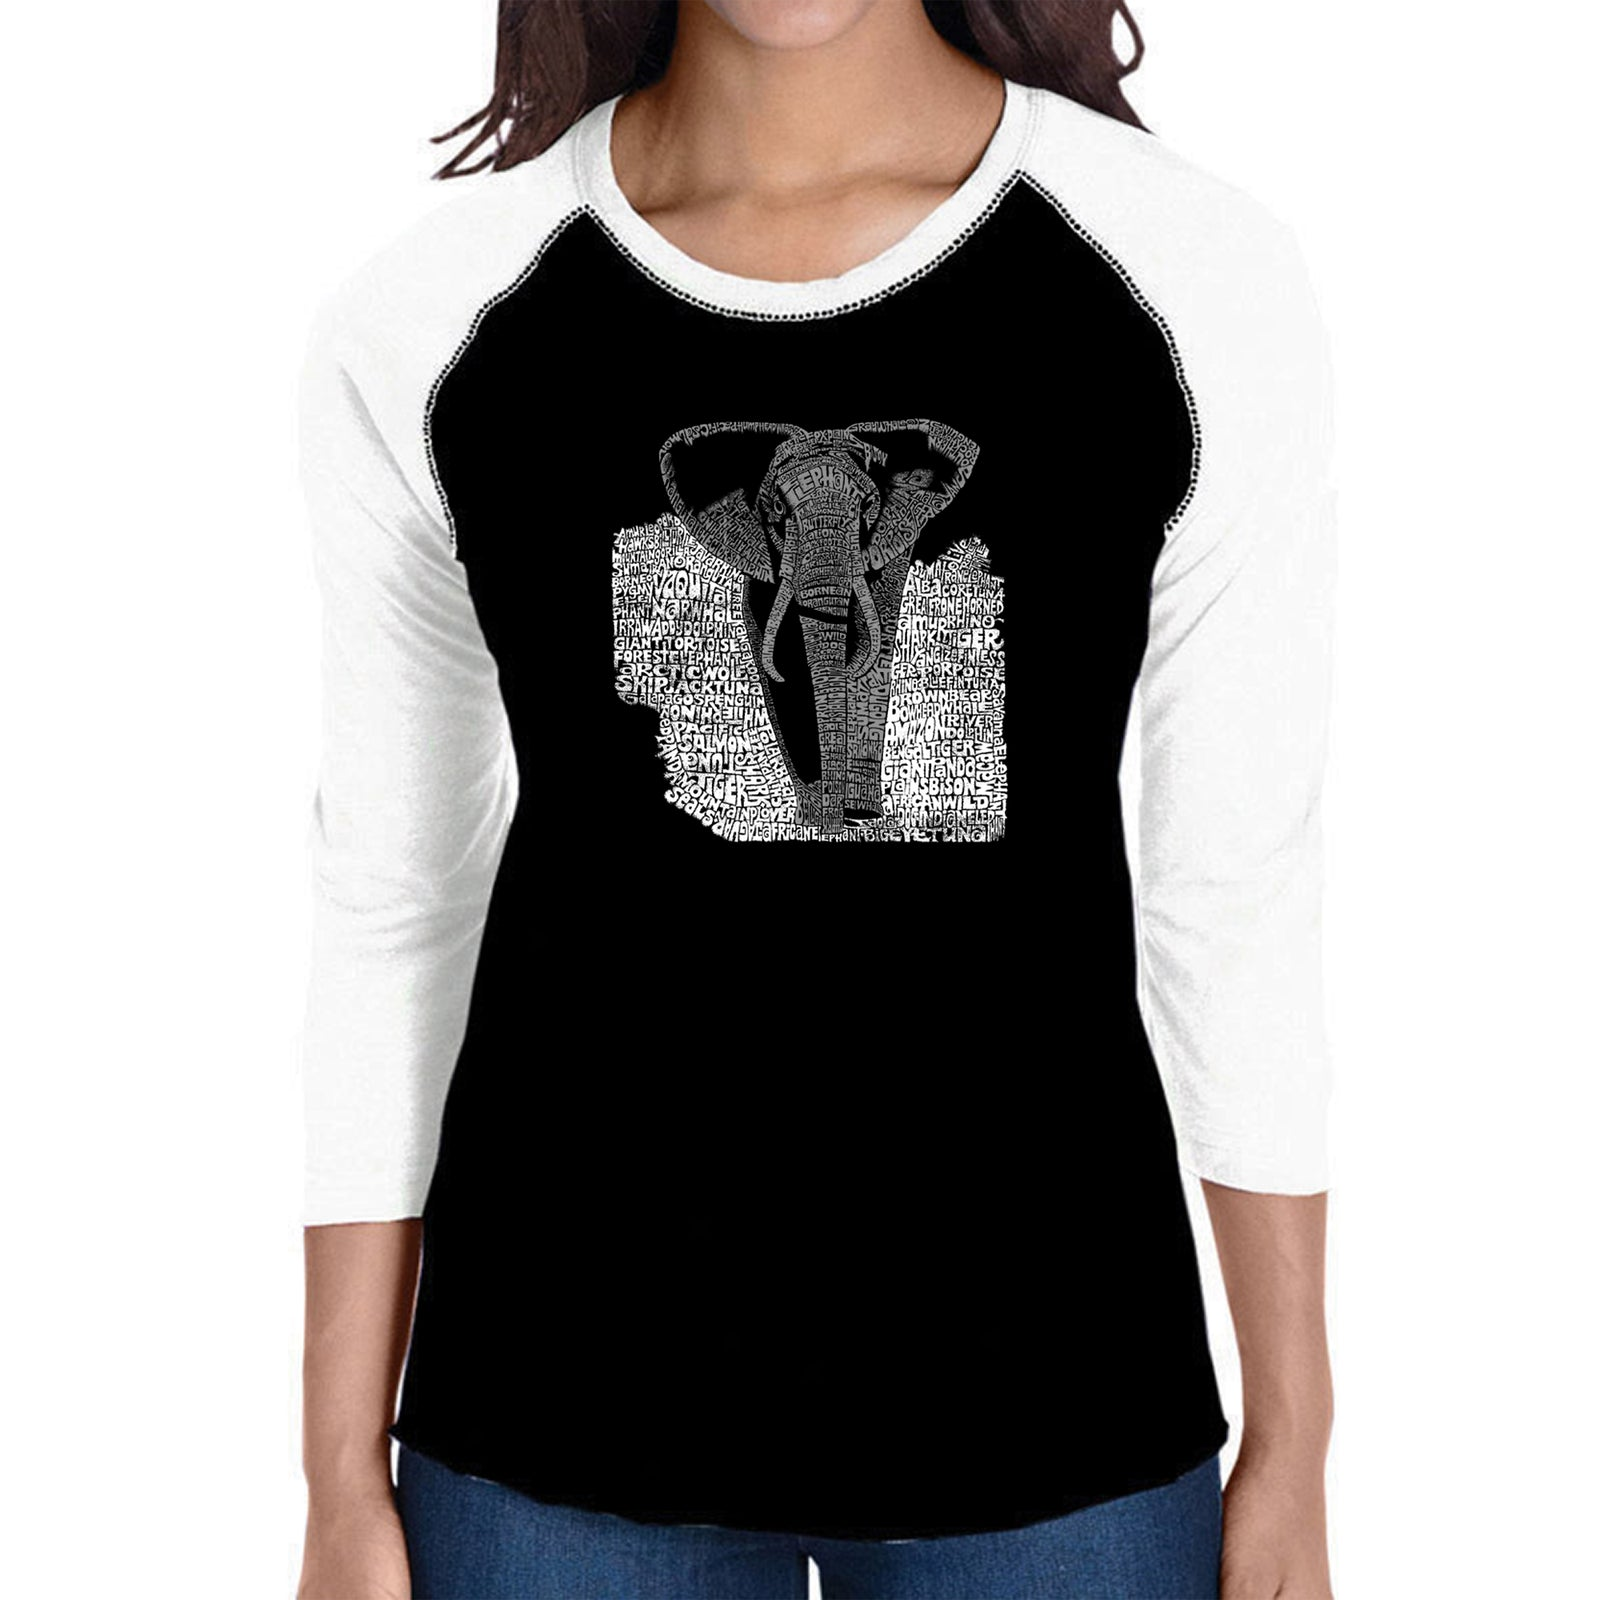 Women's Raglan Baseball Word Art T-shirt - ELEPHANT